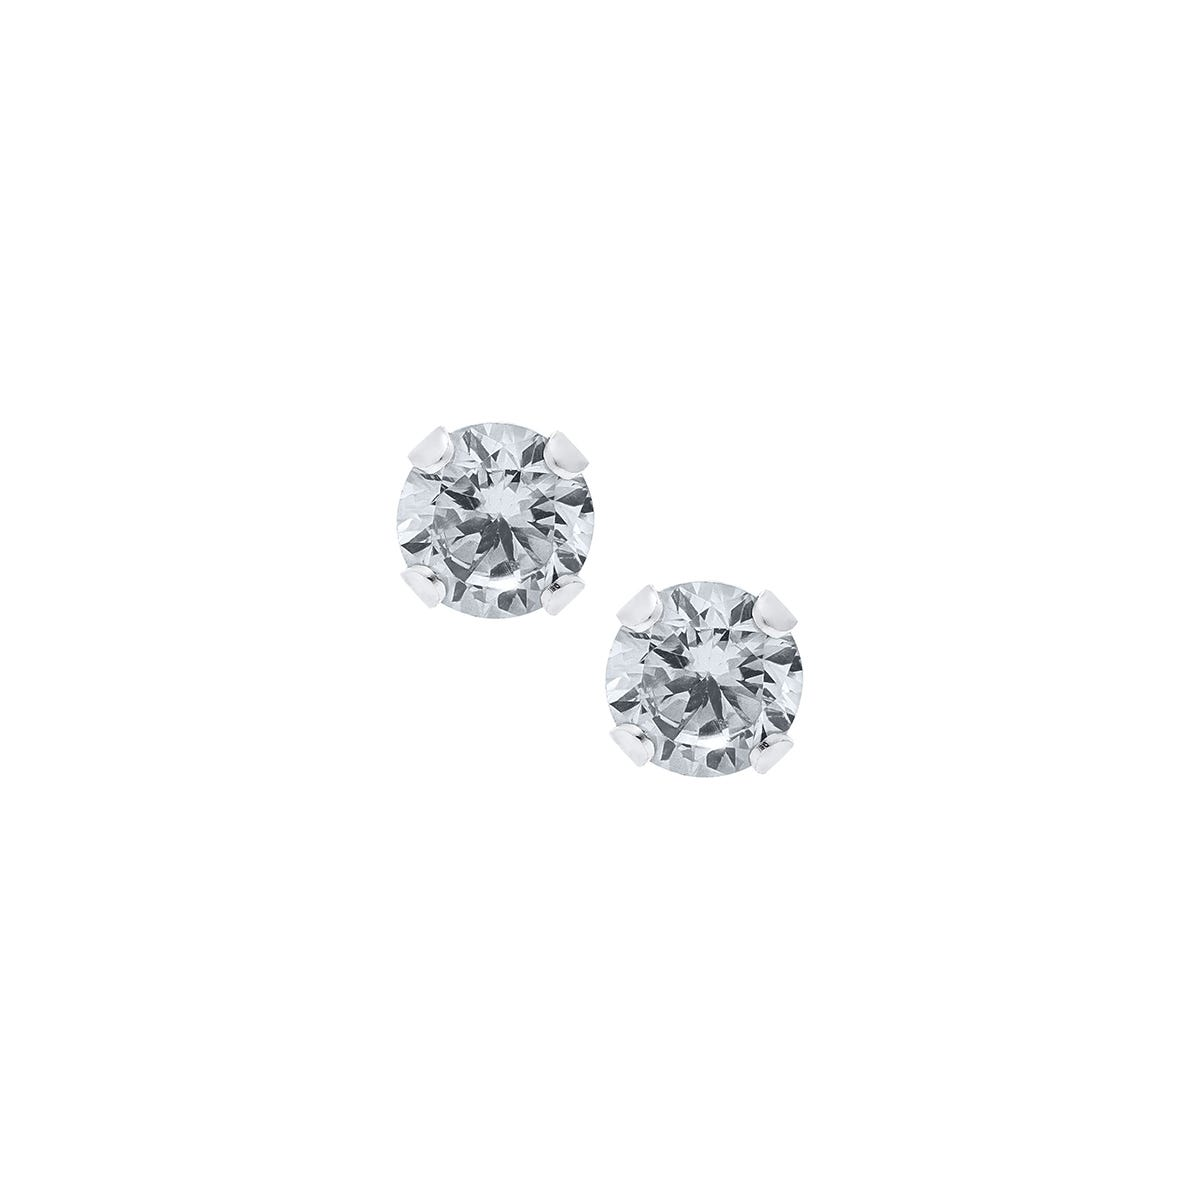 Baby & Children's 4mm Crystal Round Screw Back Earrings in Sterling Silver